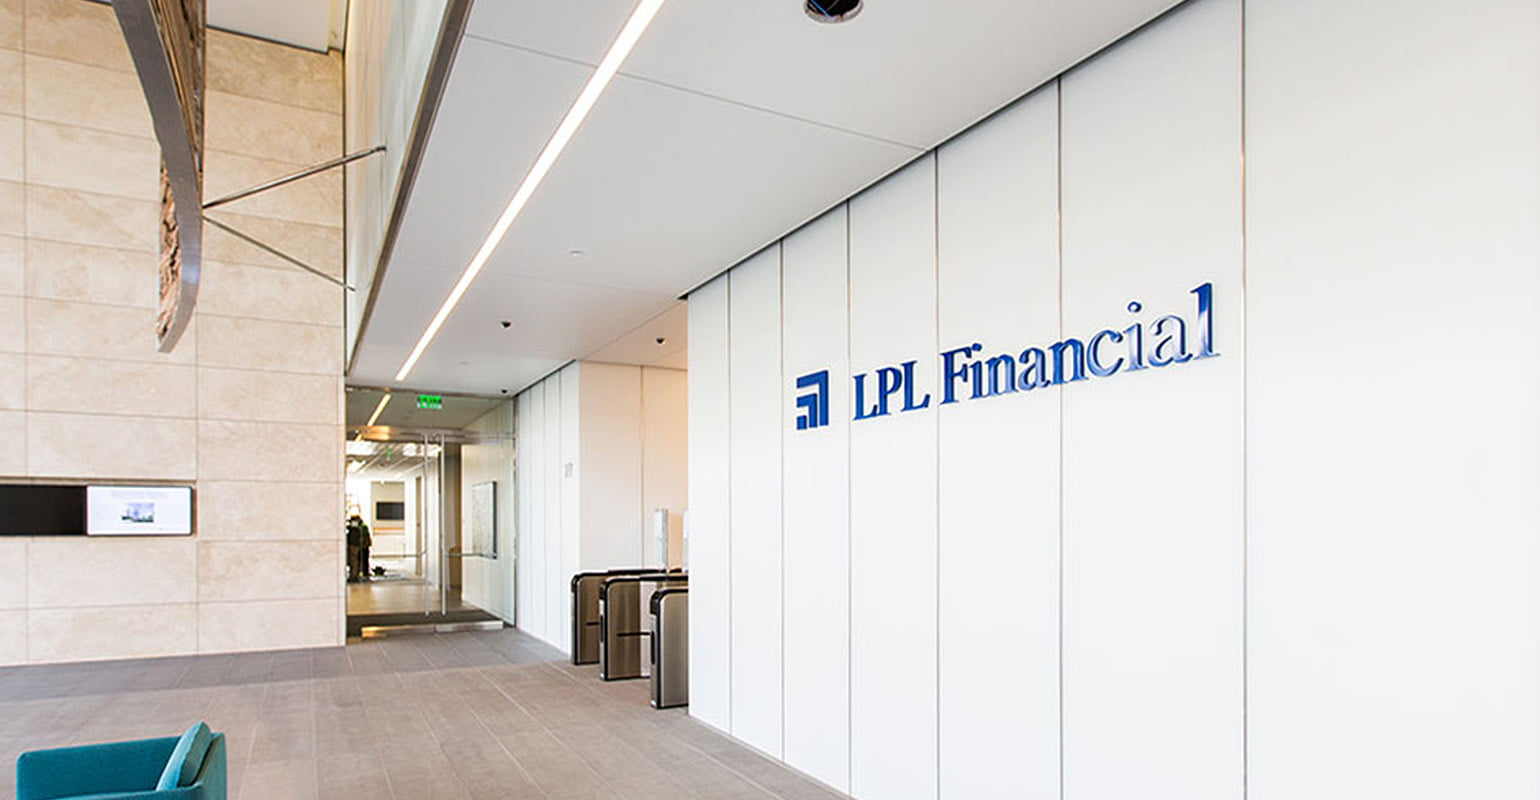 $120 Million Seacoast Financial Network Joins LPL Financial